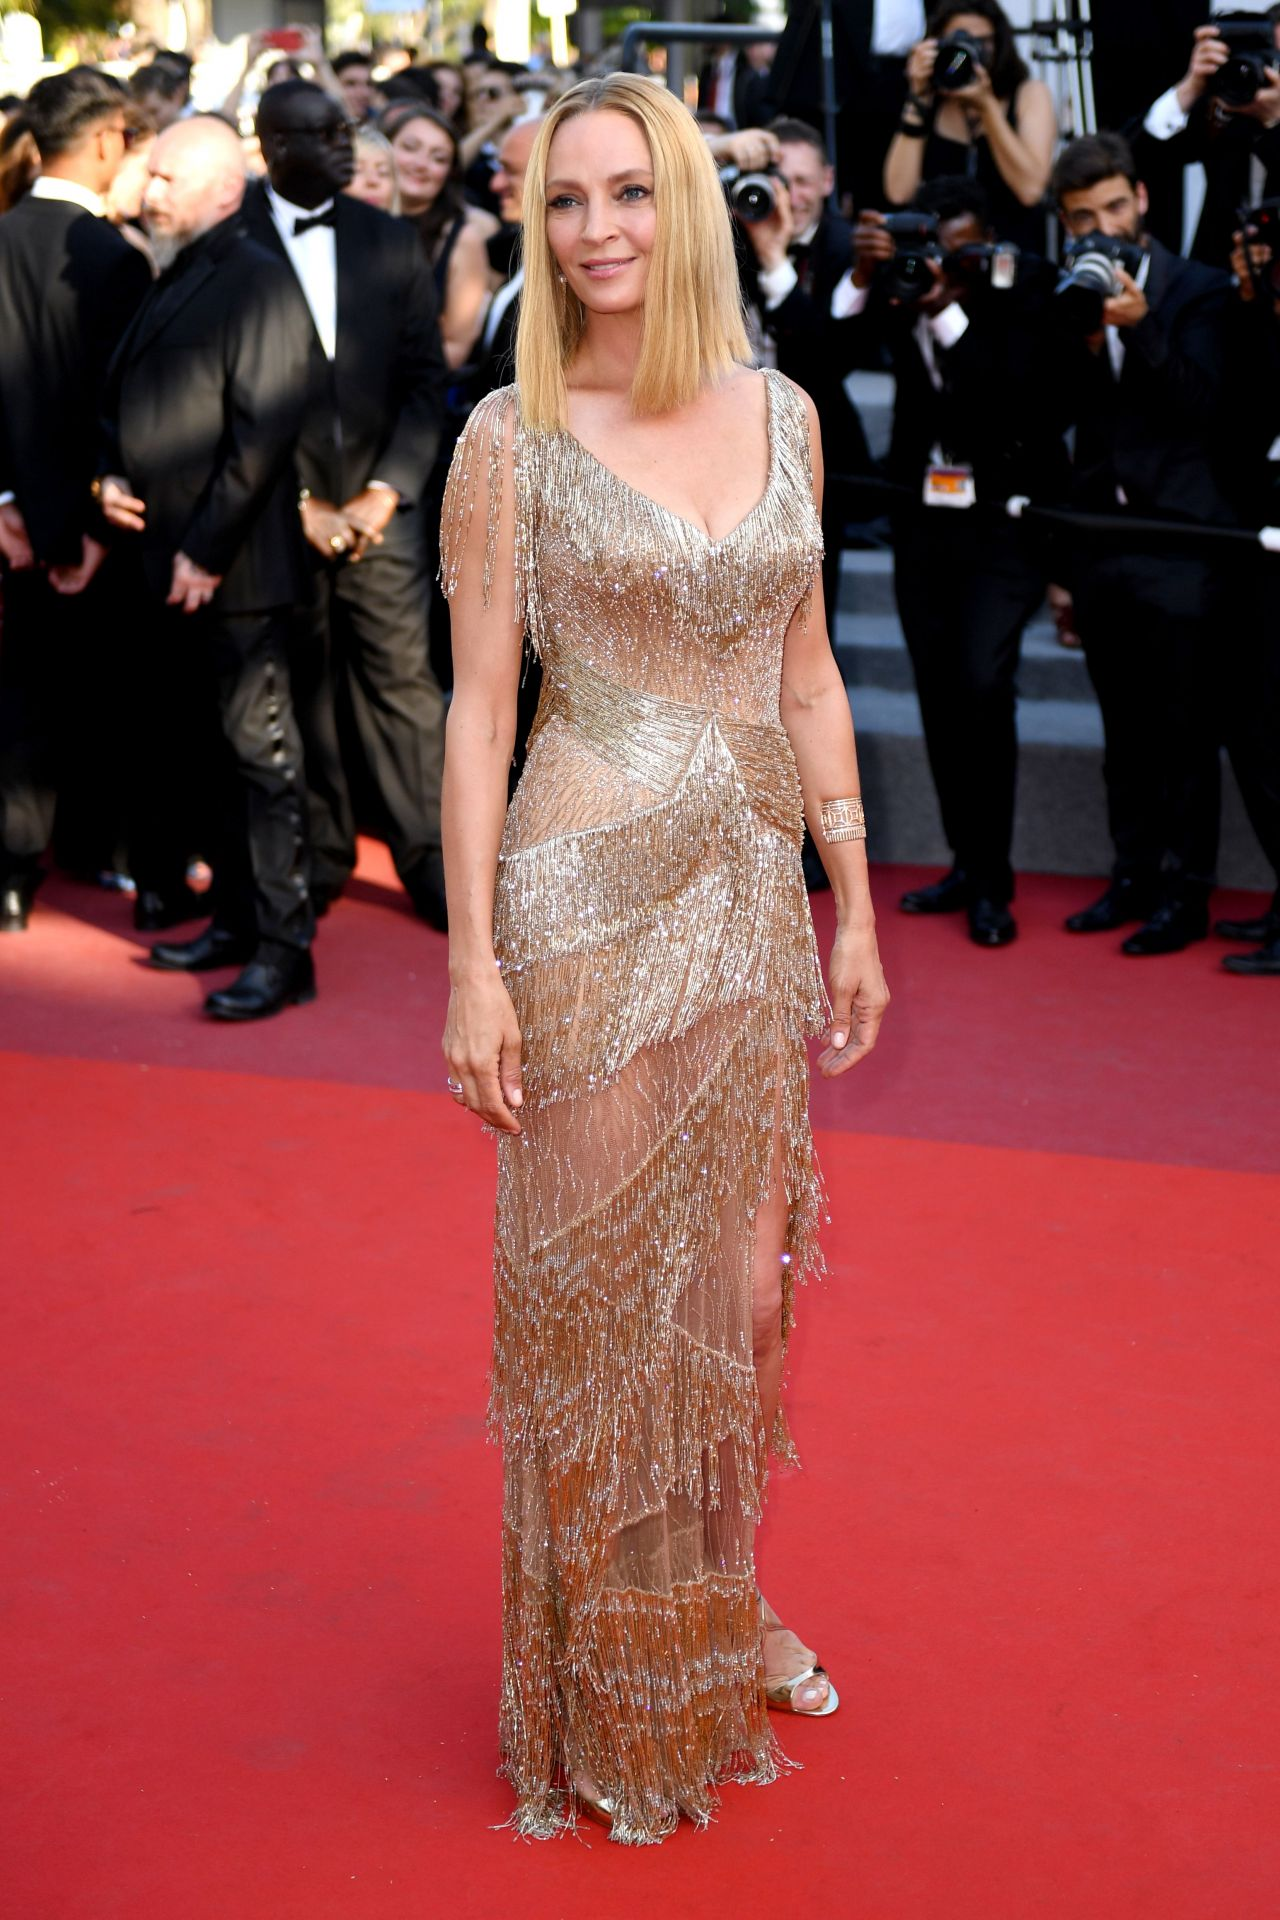 Cannes 2017 Heidi Klum Continues A Cannes Tradition In: Cannes Film Festival Closing Ceremony 05/28/2017